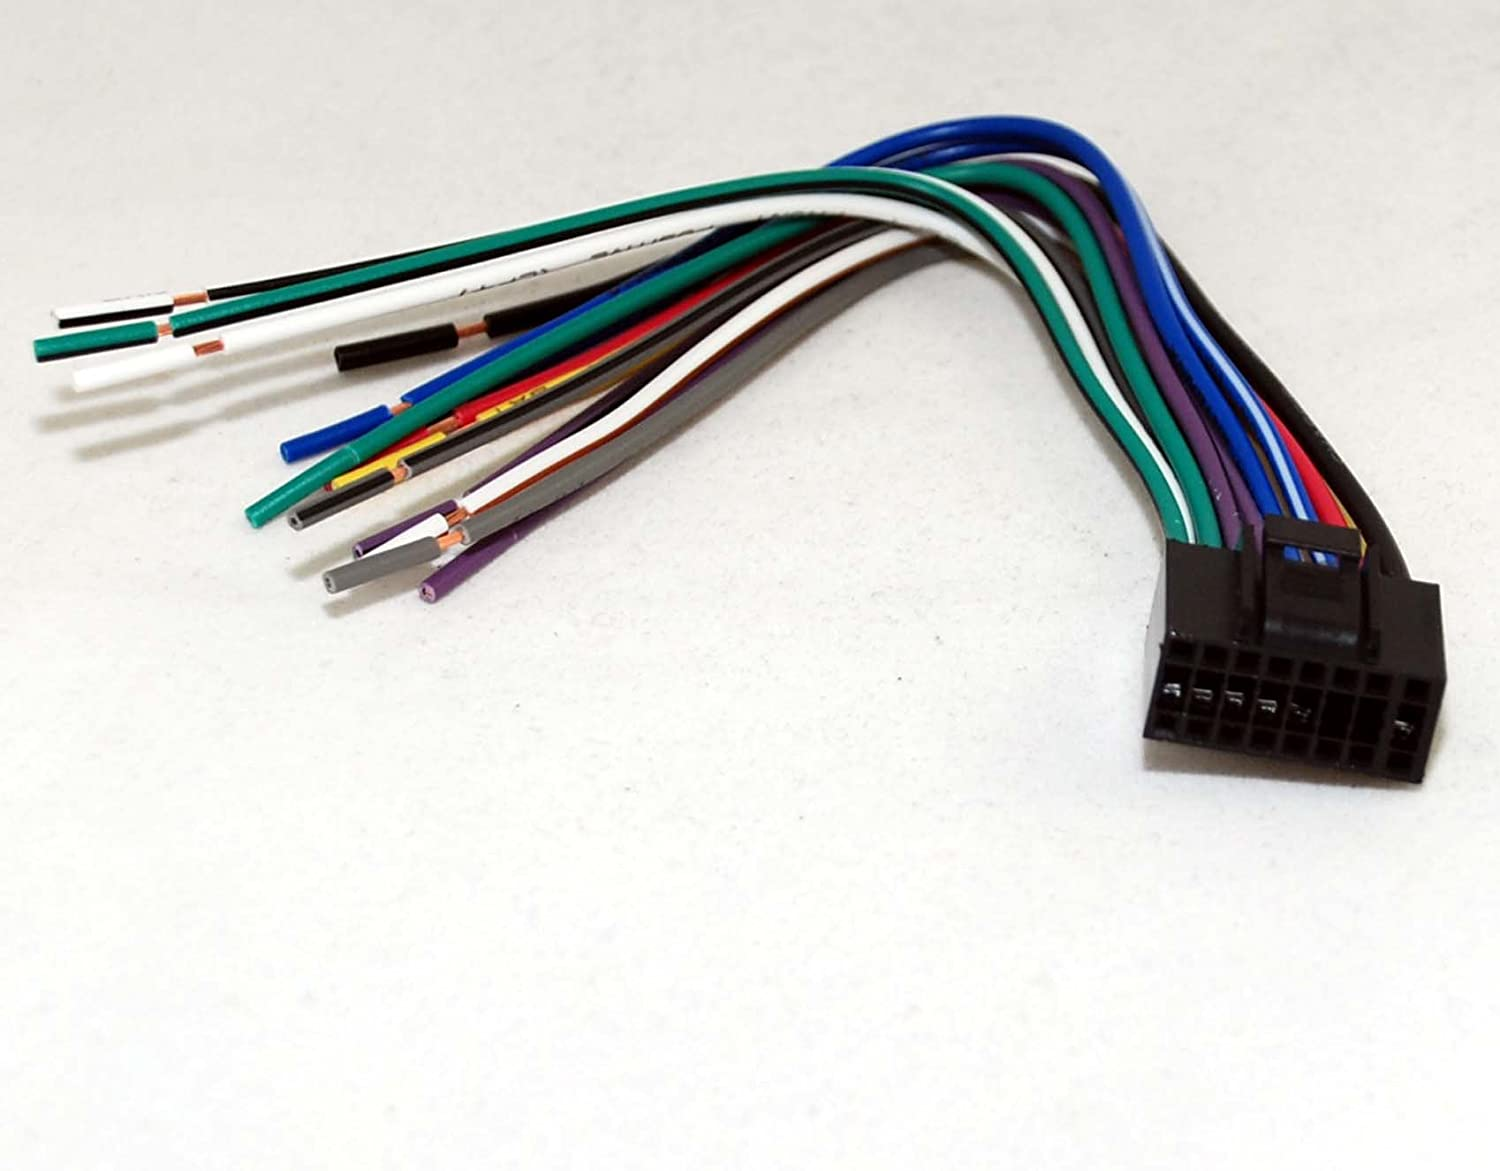 61Rzeblbo0L._SL1500_ amazon com xtenzi harness for dual 16 pin wire harness xdvd8181  at fashall.co